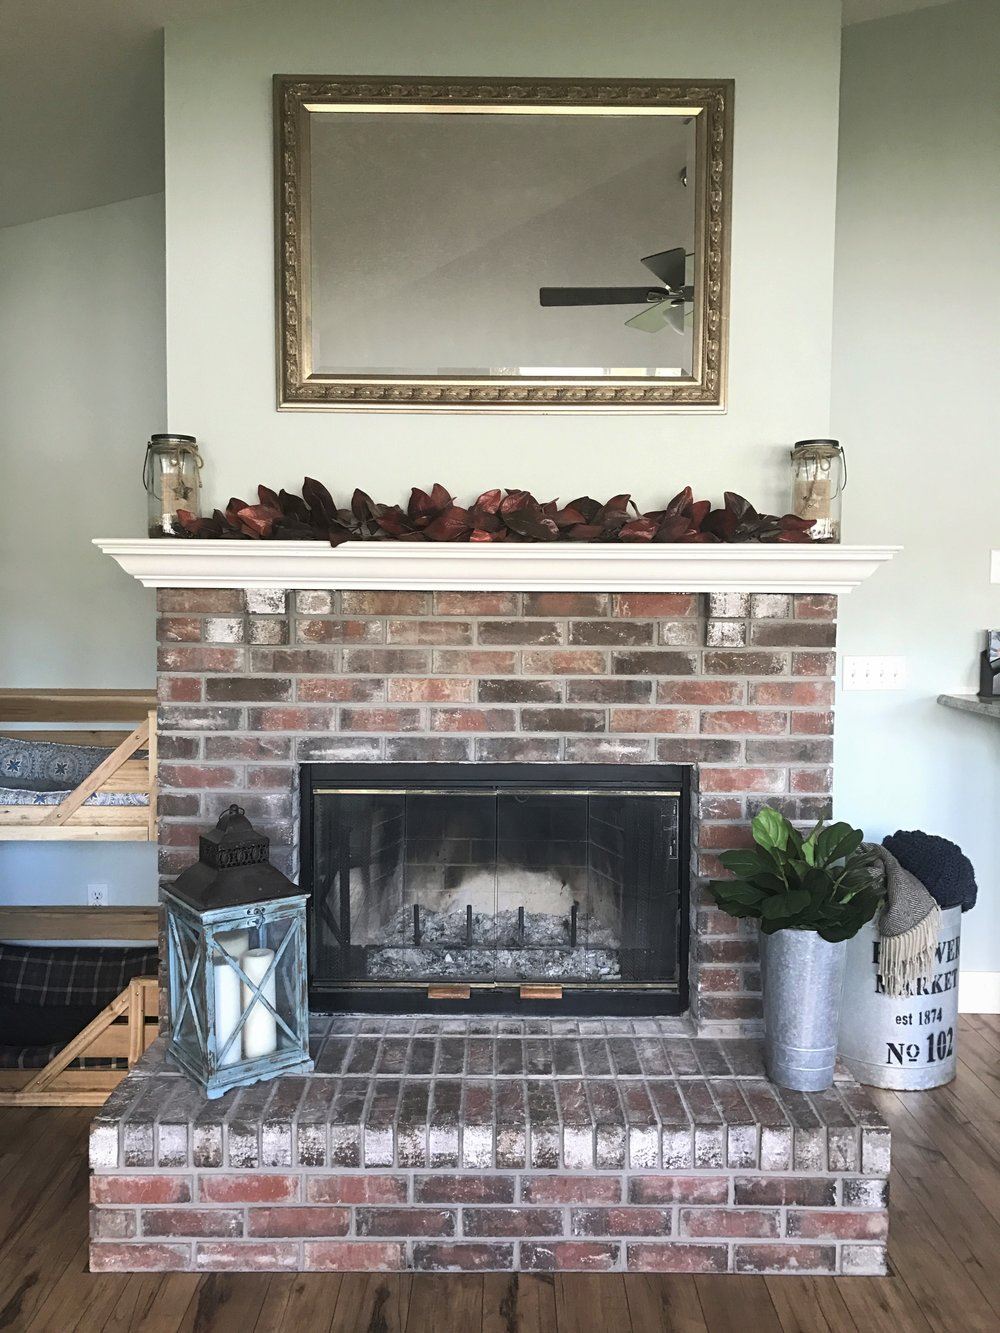 How To White Wash How To Whitewash A Brick Fireplace Southern Hound Design